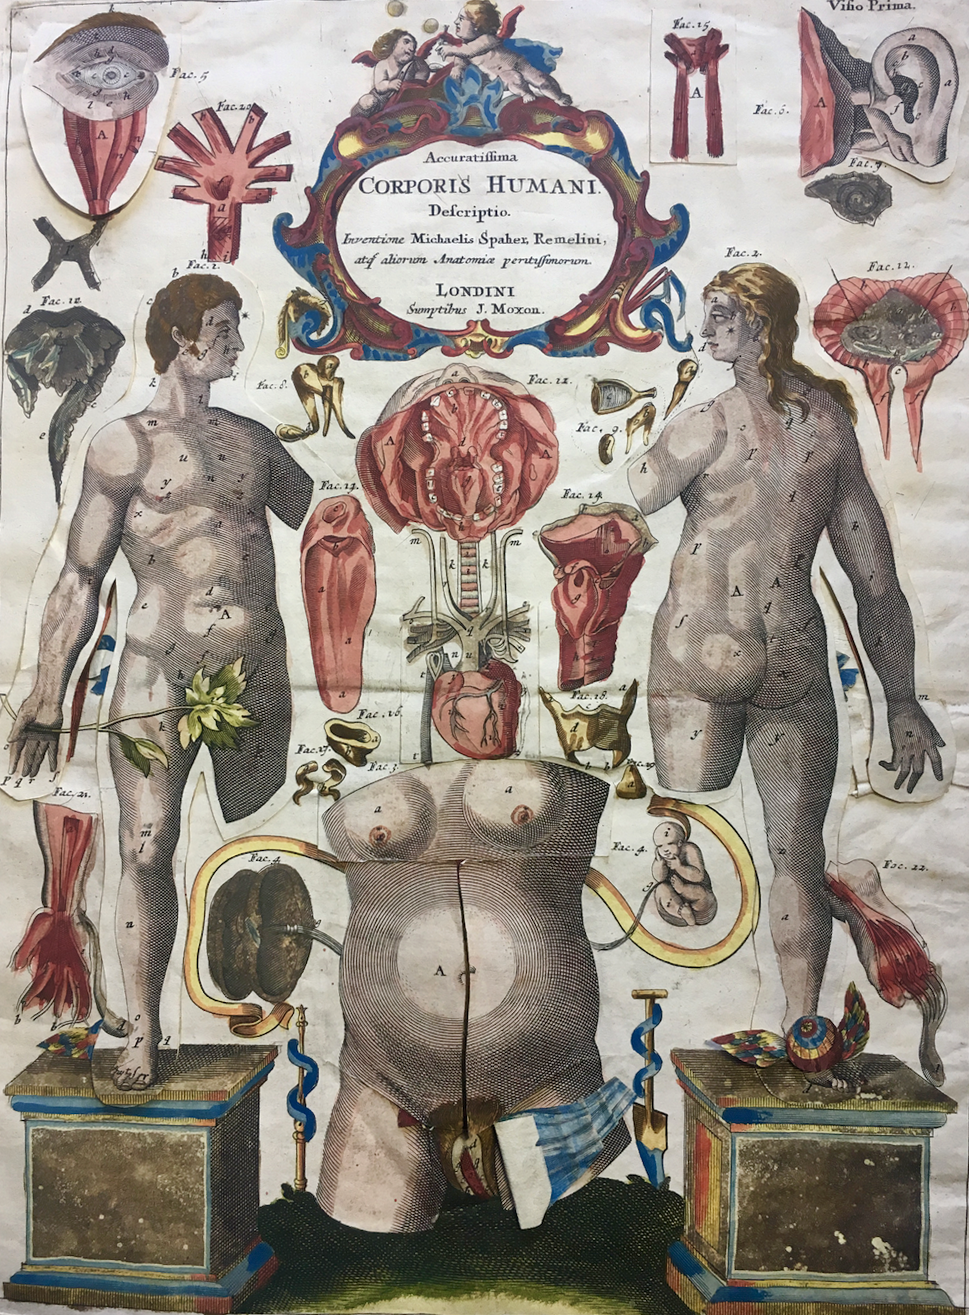 """Visio Prima of a hand-colored copy of the Catoptrum Microcosmicum (1698)"""